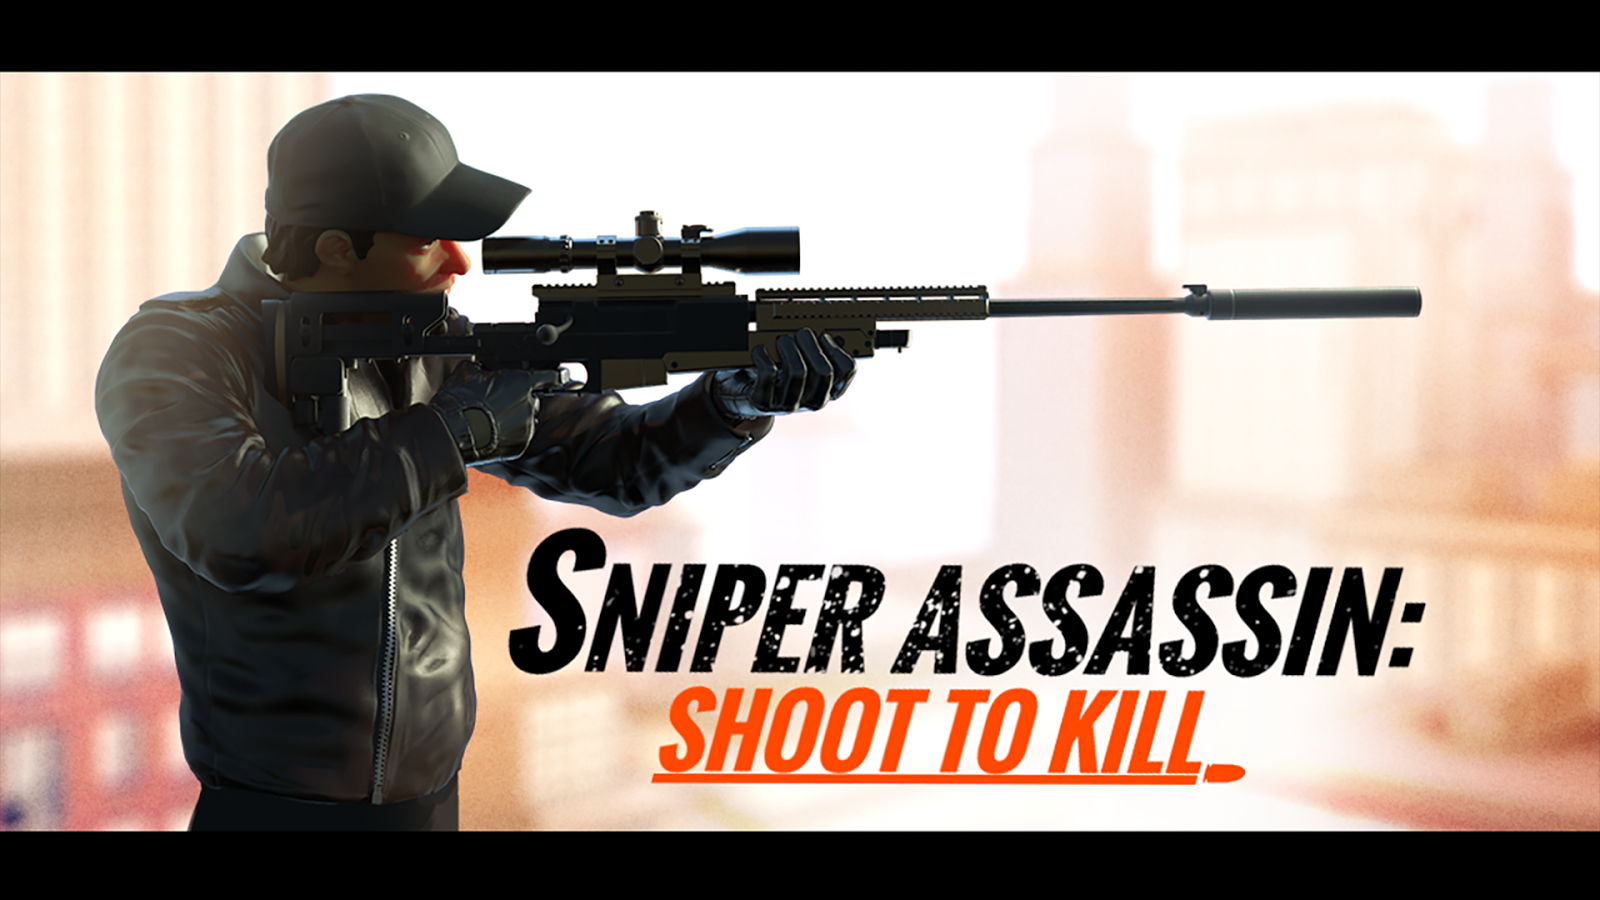 Sniper Assassin Shoot To Kill